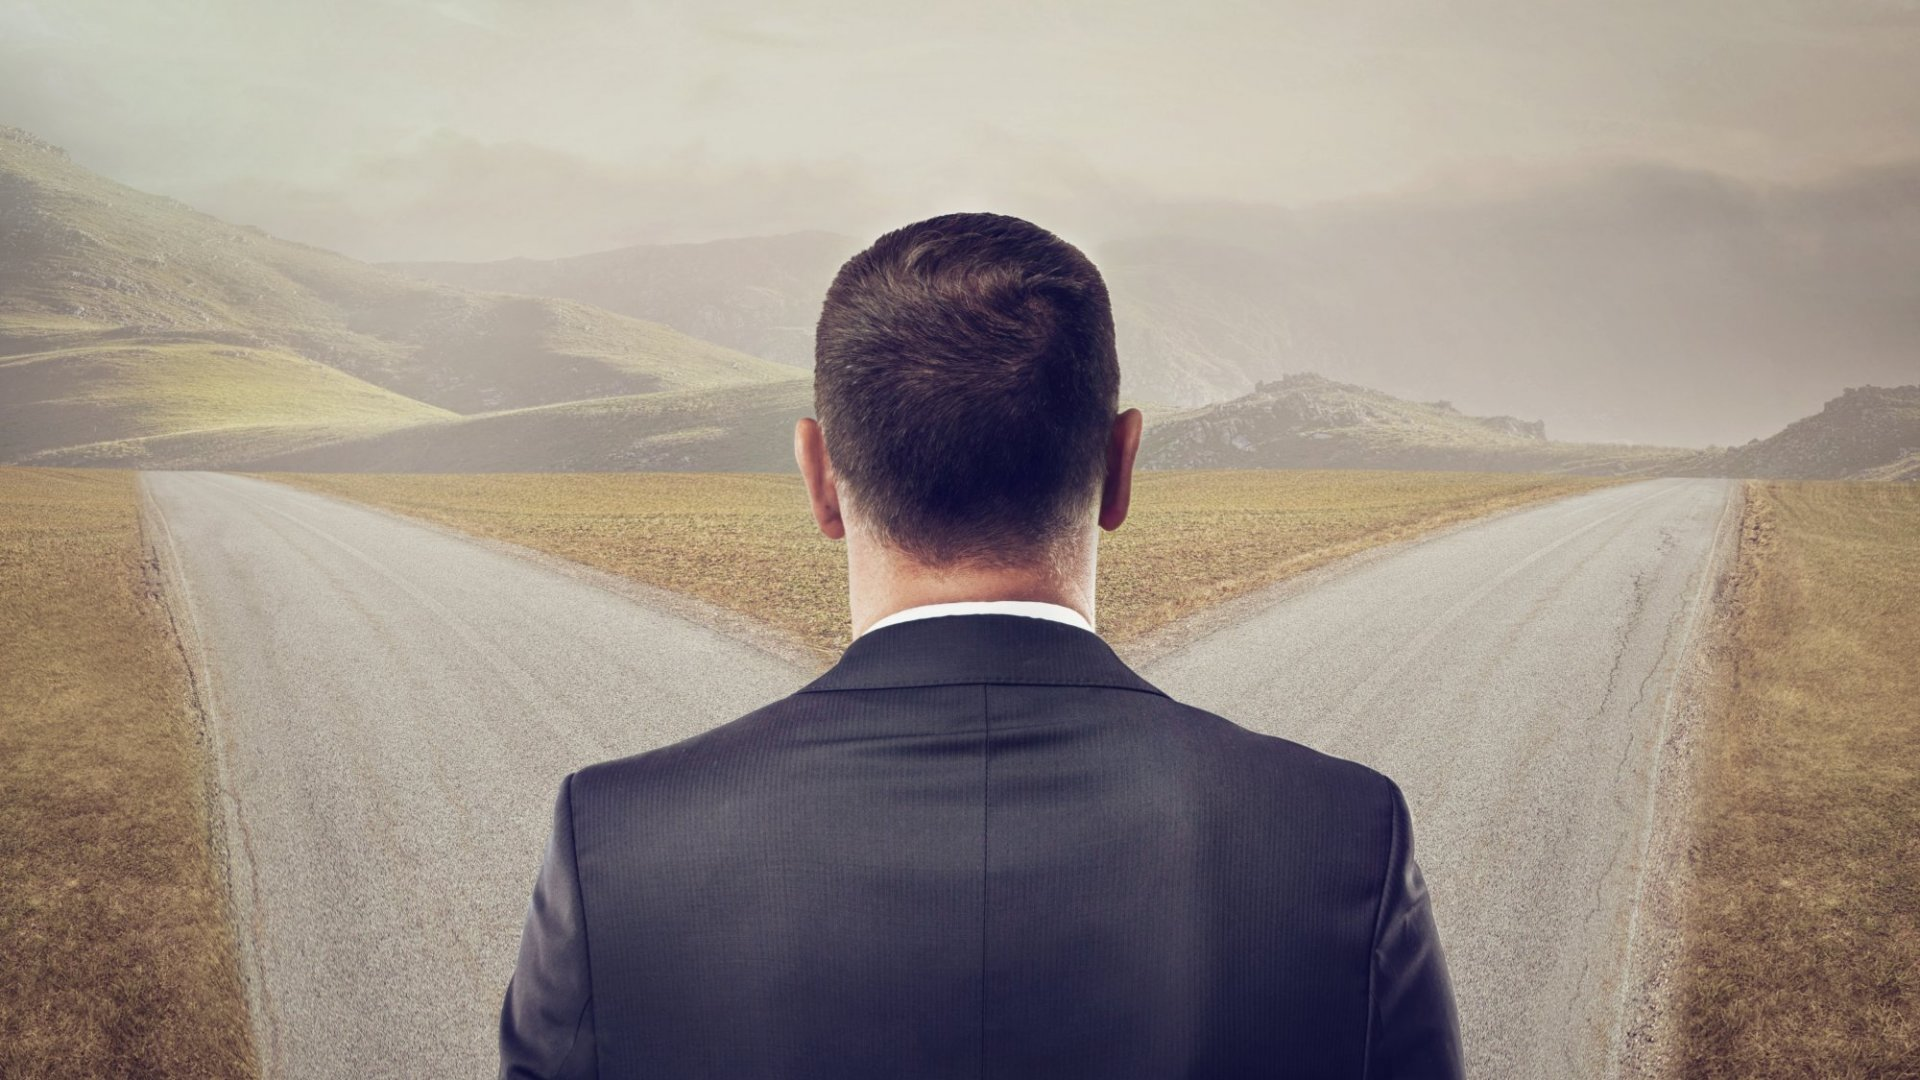 7 Powerful Ways to Make Decisions With Confidence